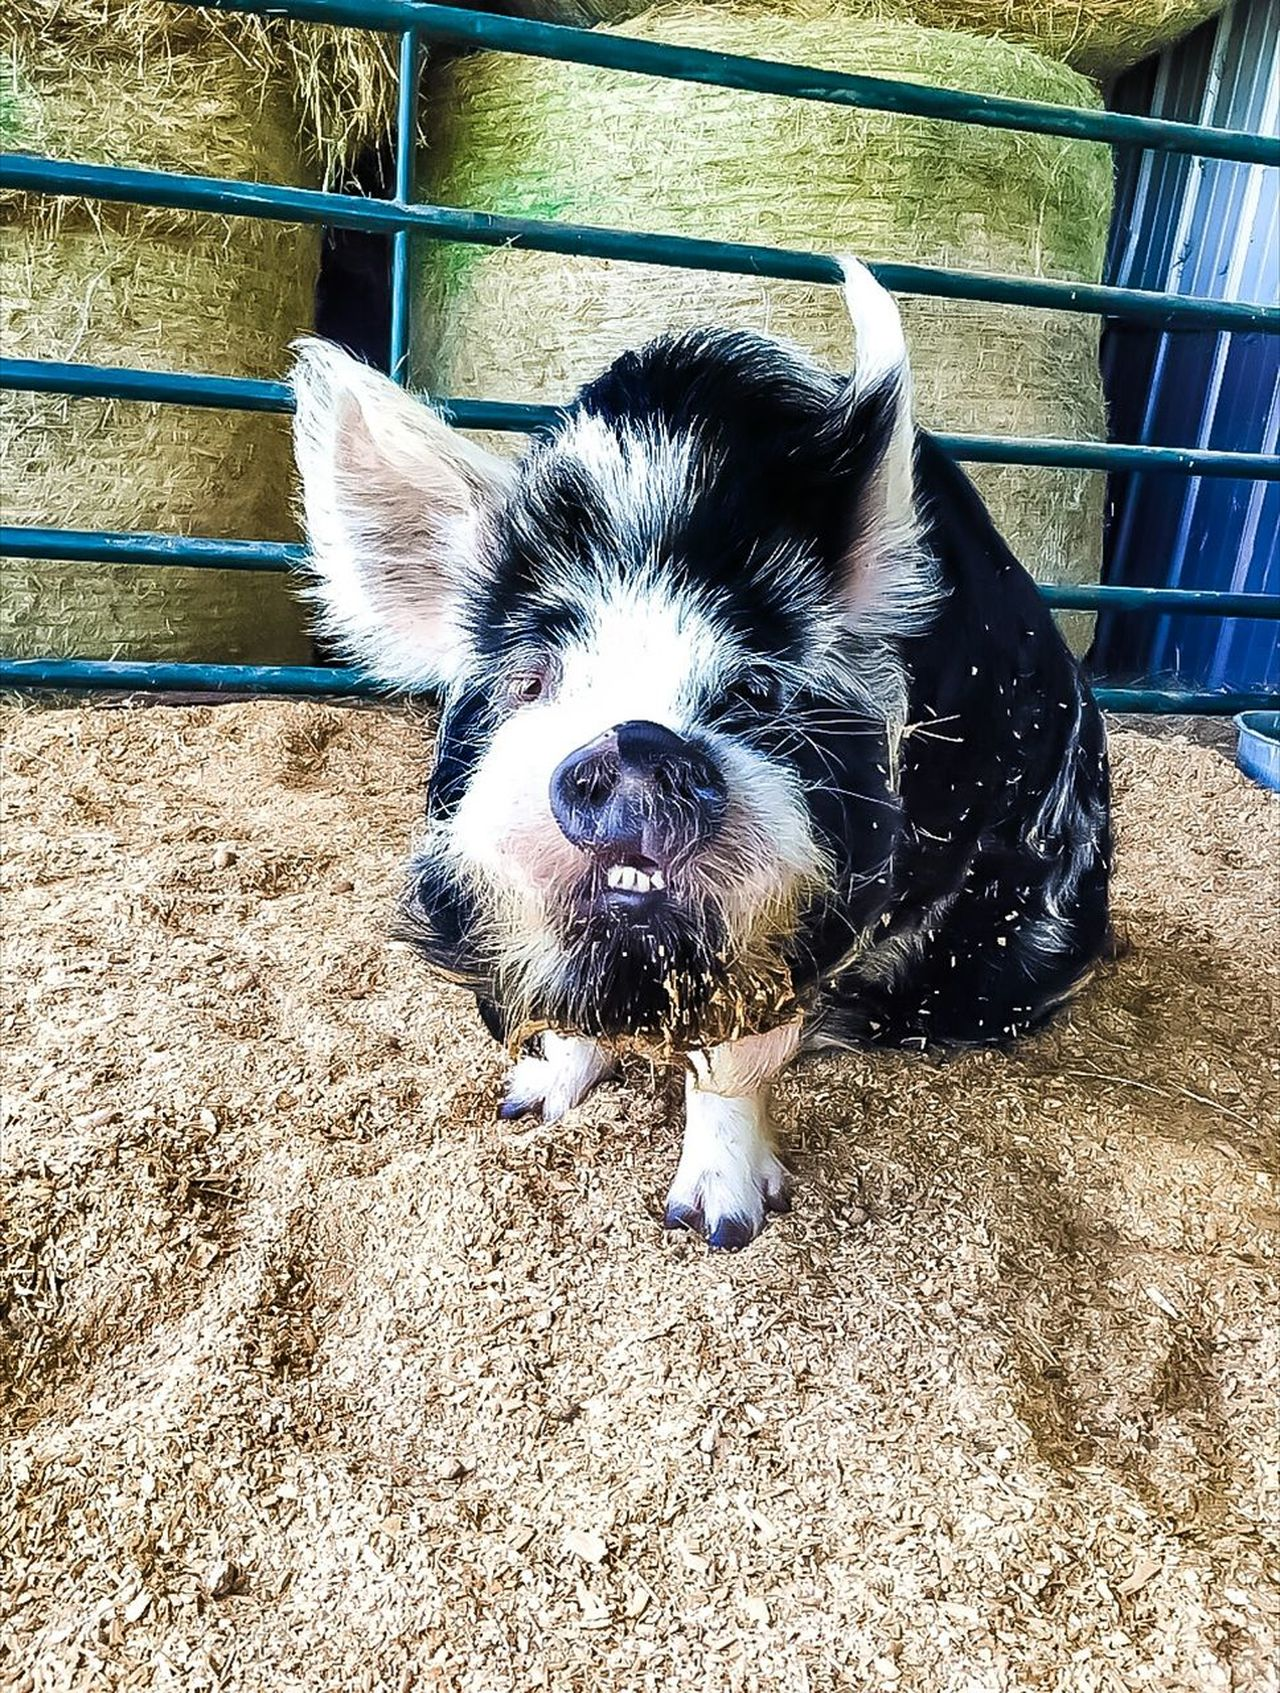 Domestic Animals Pets One Animal Animal Themes Mammal Looking At Camera Portrait Close-up Buckteeth Funny Face Big Pig Bucktooth Big Teeth Farm Animal Pig Funny Anımals Piggy Pig Nose Ugly Is Nice Barn Animals So Ugly It's Beautiful! Pet Pig Fat Pig Pet Pets Of Eyeem